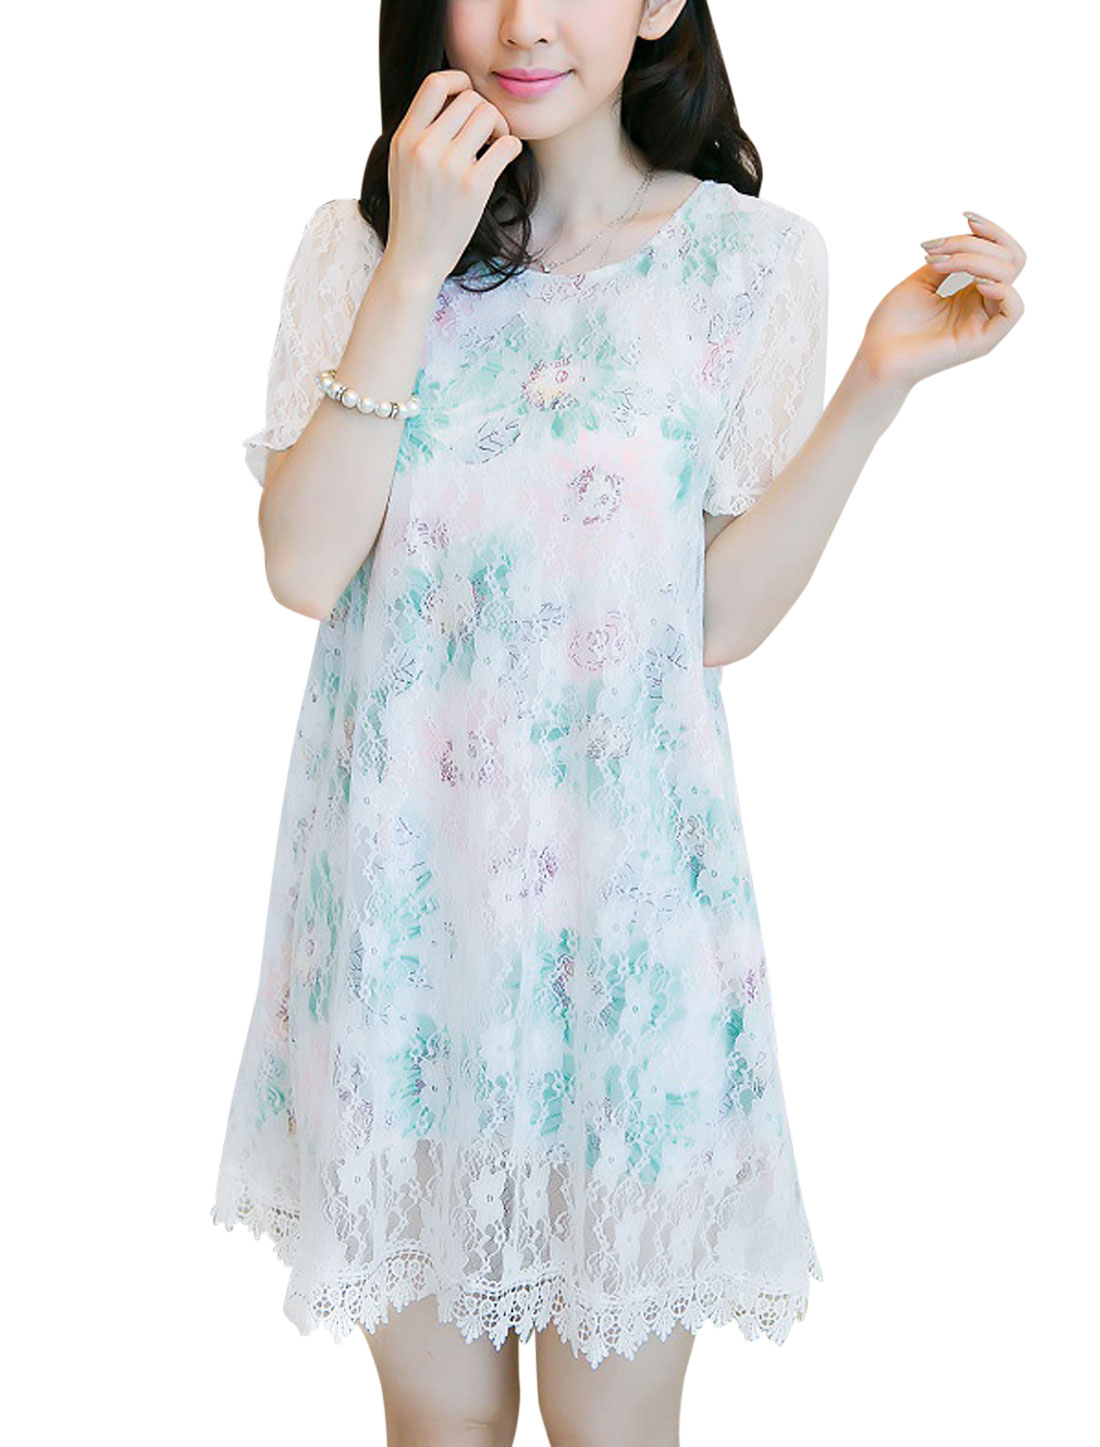 Lady Short Sleeve Floral Prints Lace Overlay Elastic Cuffs Dress Mint M